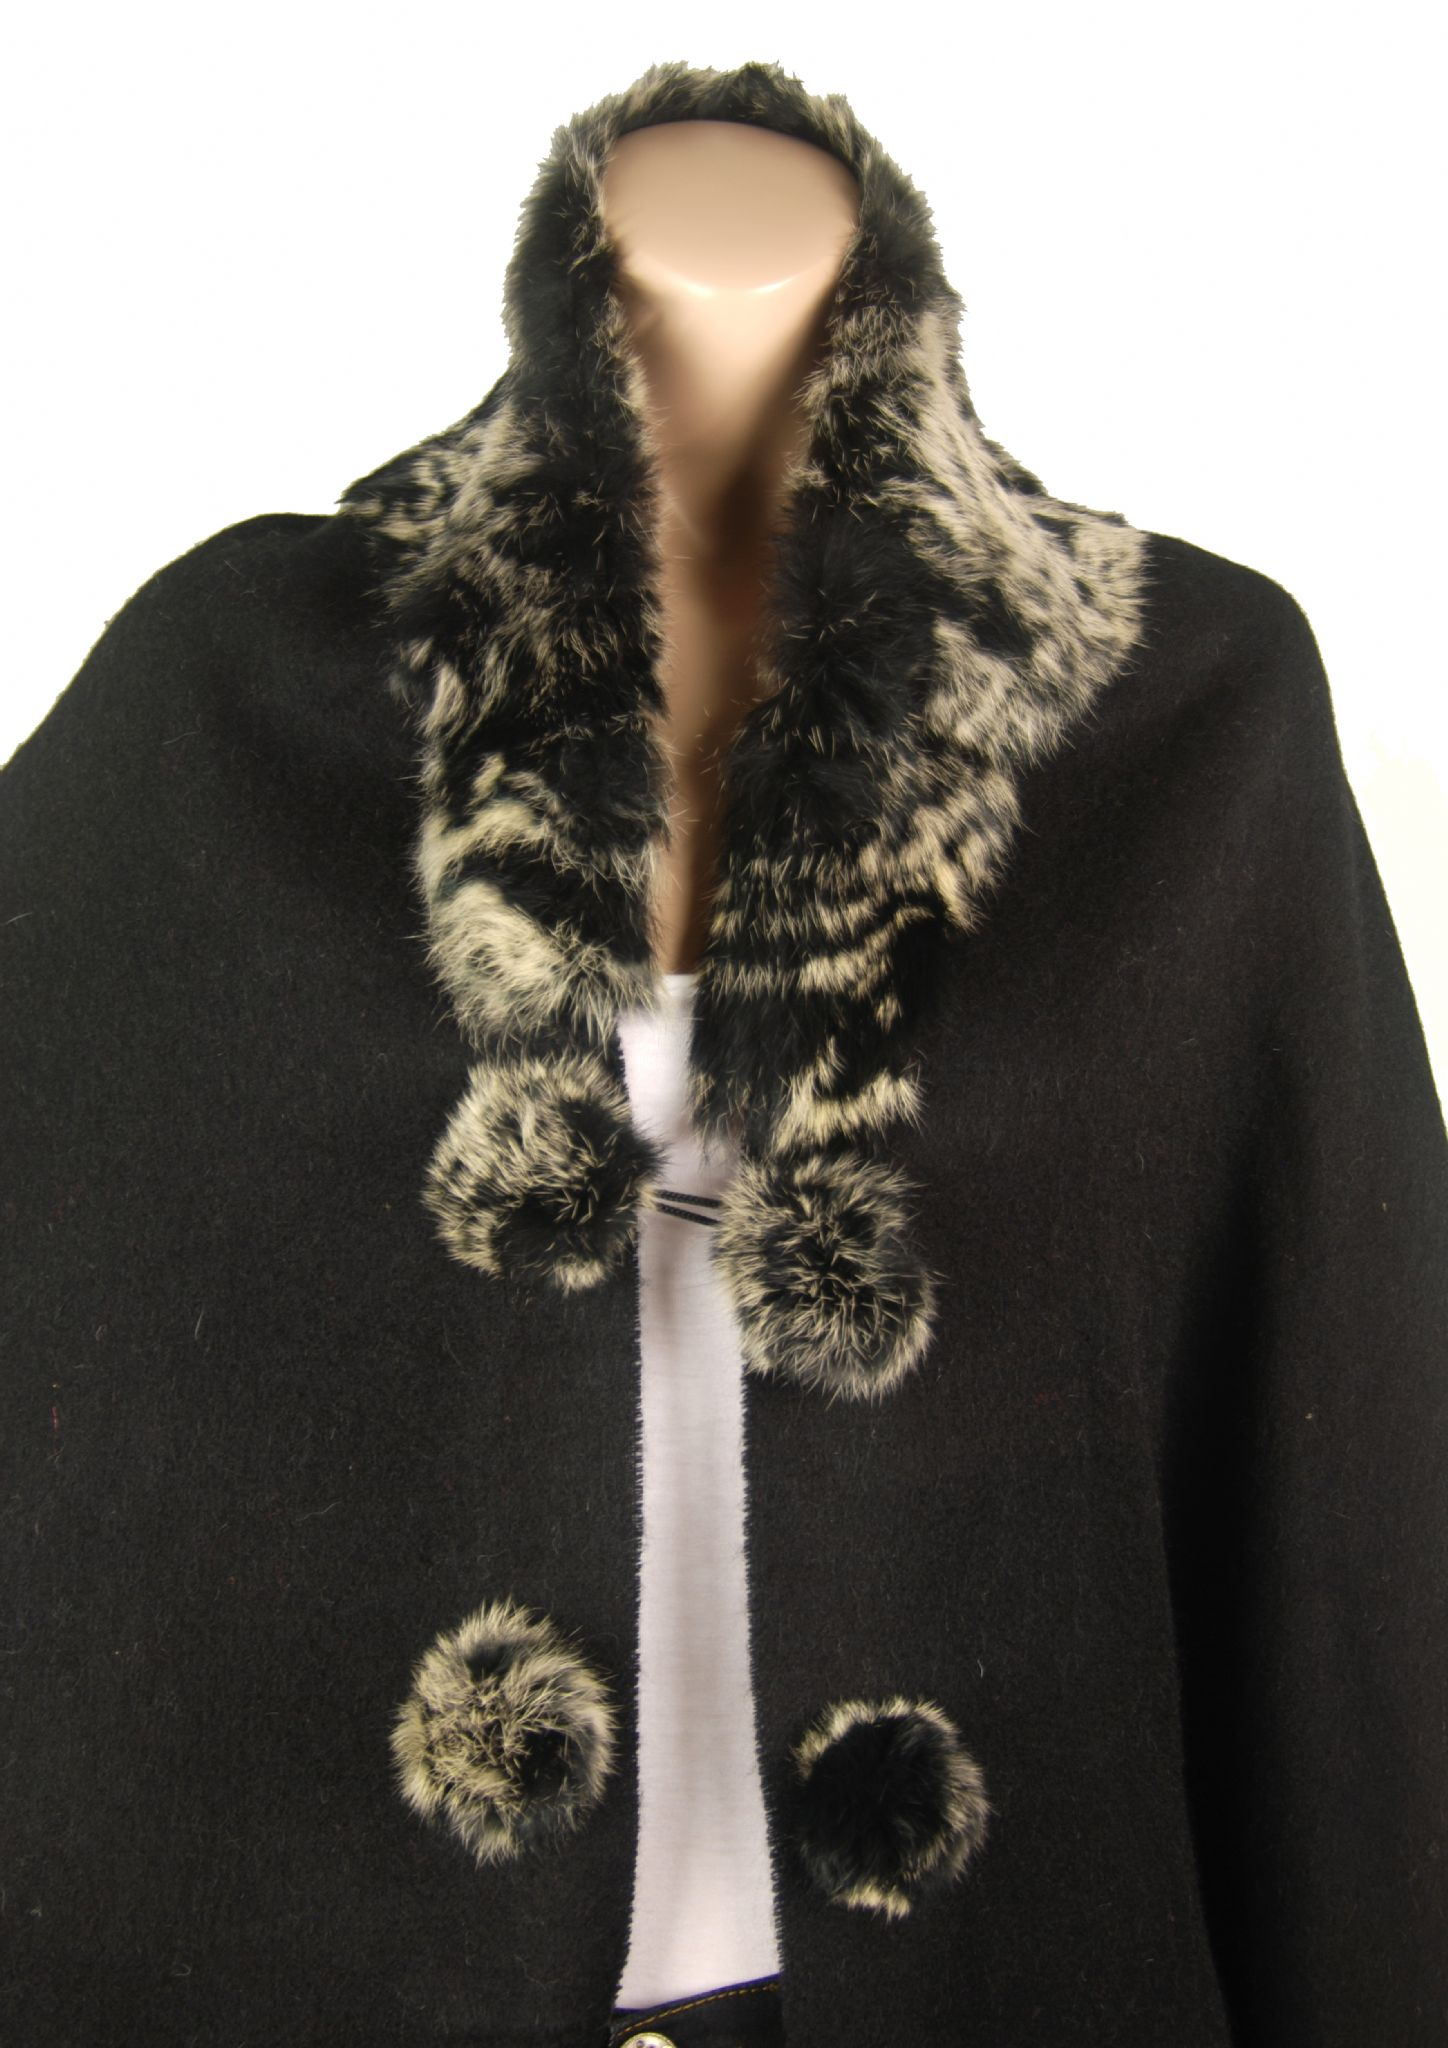 http://youraccount.ekmpowershop27.com/ekmps/shops/conmigo/images/1.-cd710-black-elegant-wool-winter-wrap-with-a-luxurious-thick-coordinating-fox-fur-collar-[2]-18151-p.jpg